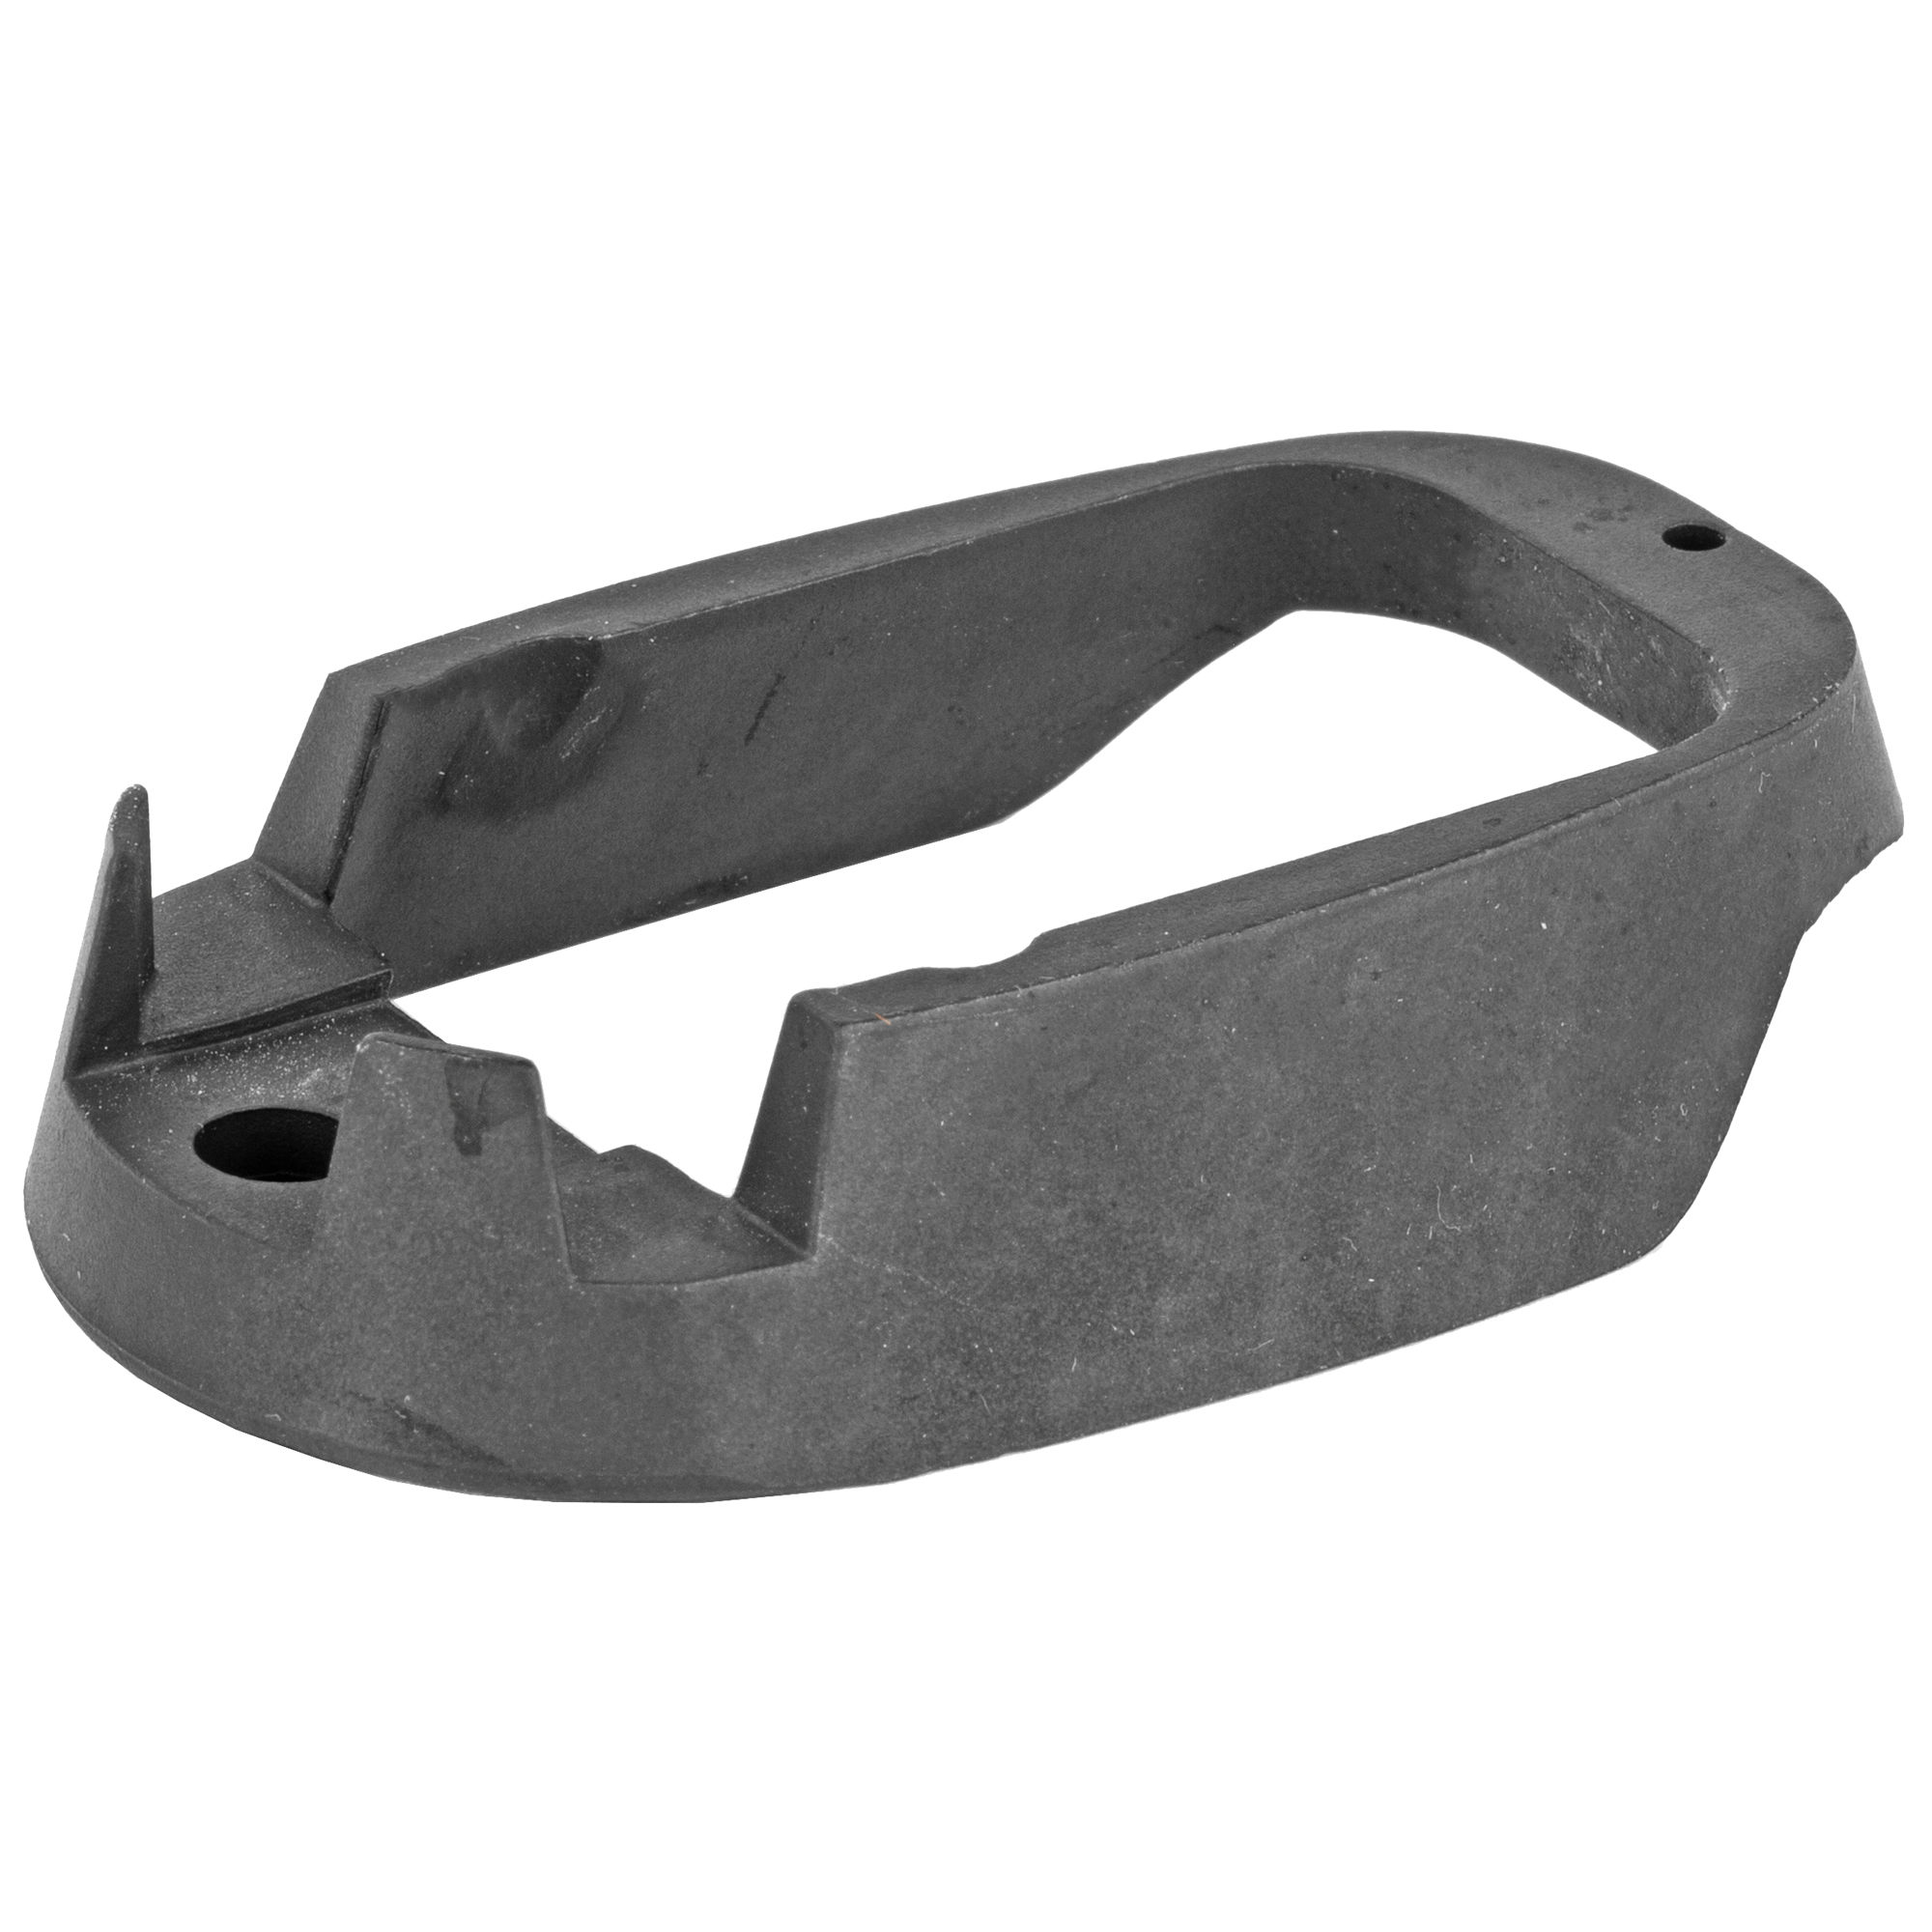 The HK Jet Funnel fits full size 9mm and .40S&W USP Pistols. This enlarged magazine well allows for fast and easy reloading.